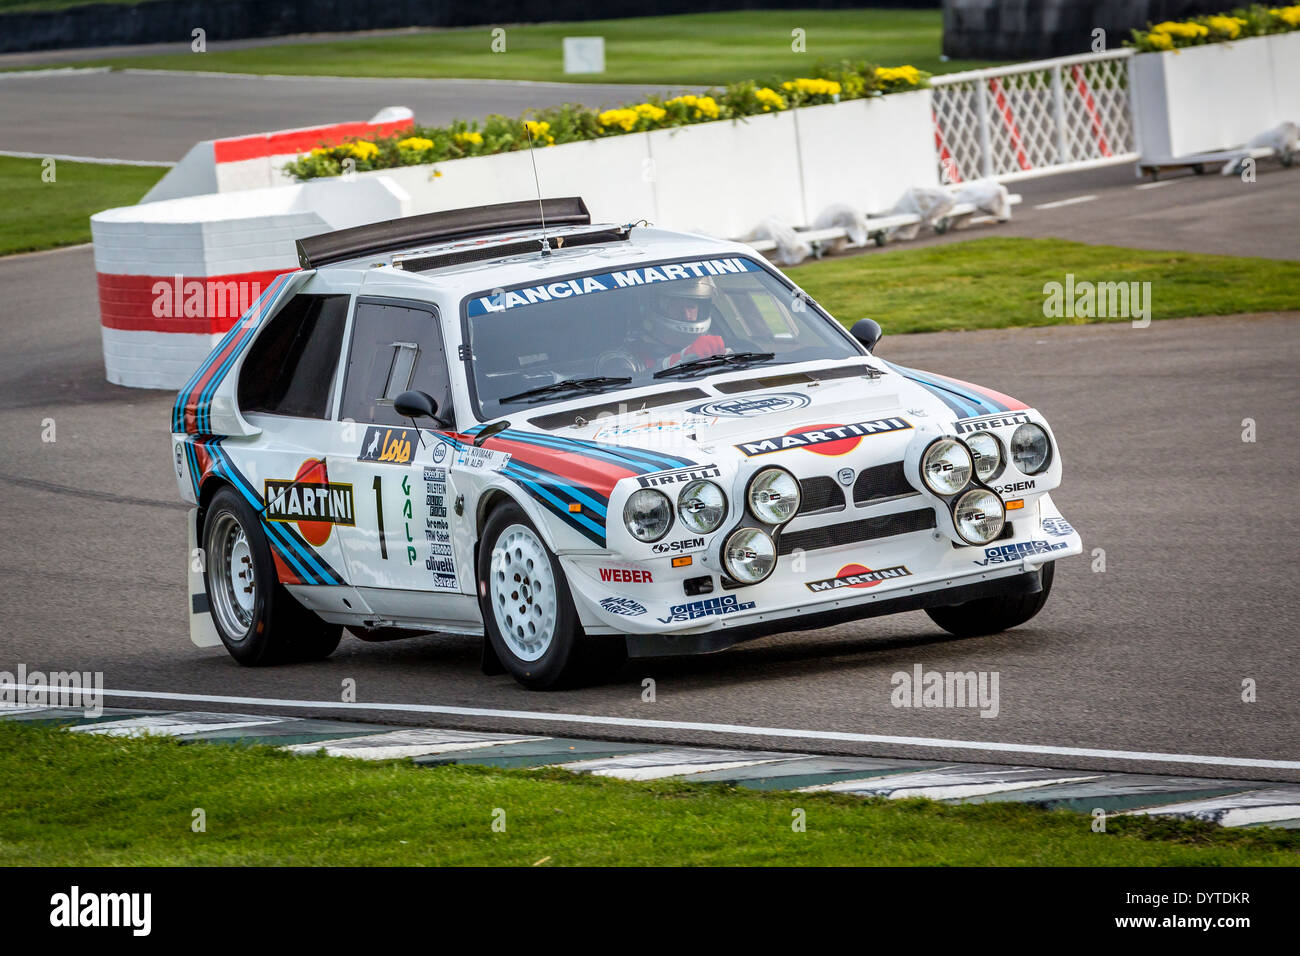 https://c8.alamy.com/comp/DYTDKR/1985-lancia-delta-s4-group-b-rally-car-with-driver-henry-pearman-72nd-DYTDKR.jpg